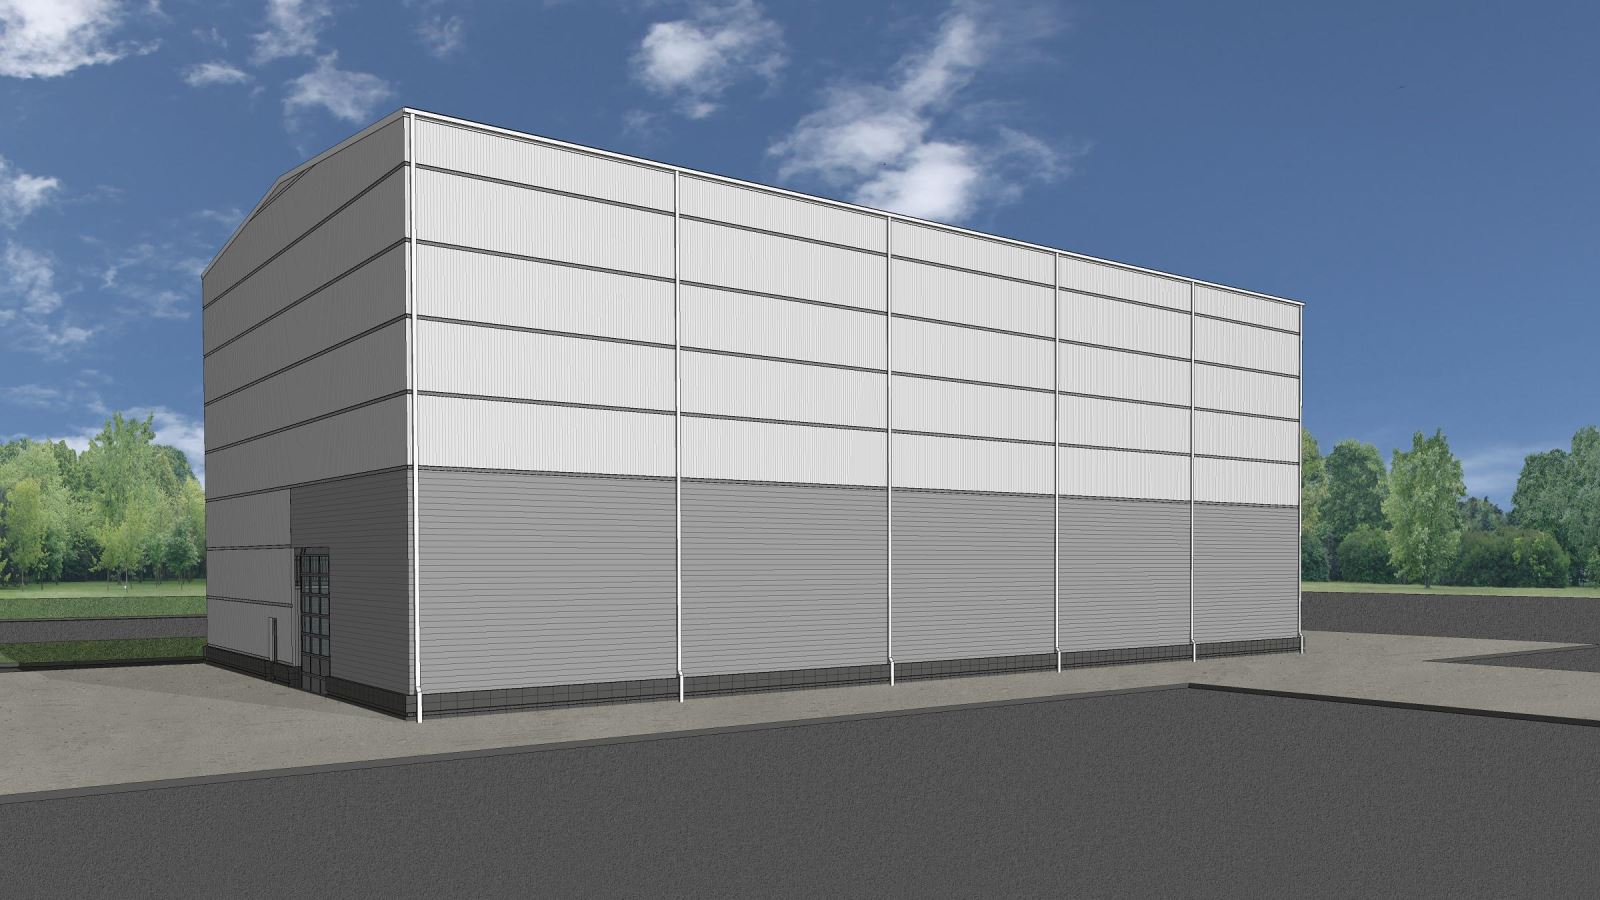 MASP & PSTA Project 3: Public Safety Training Academy - High Bay Exterior View Of Fire Training Support Building